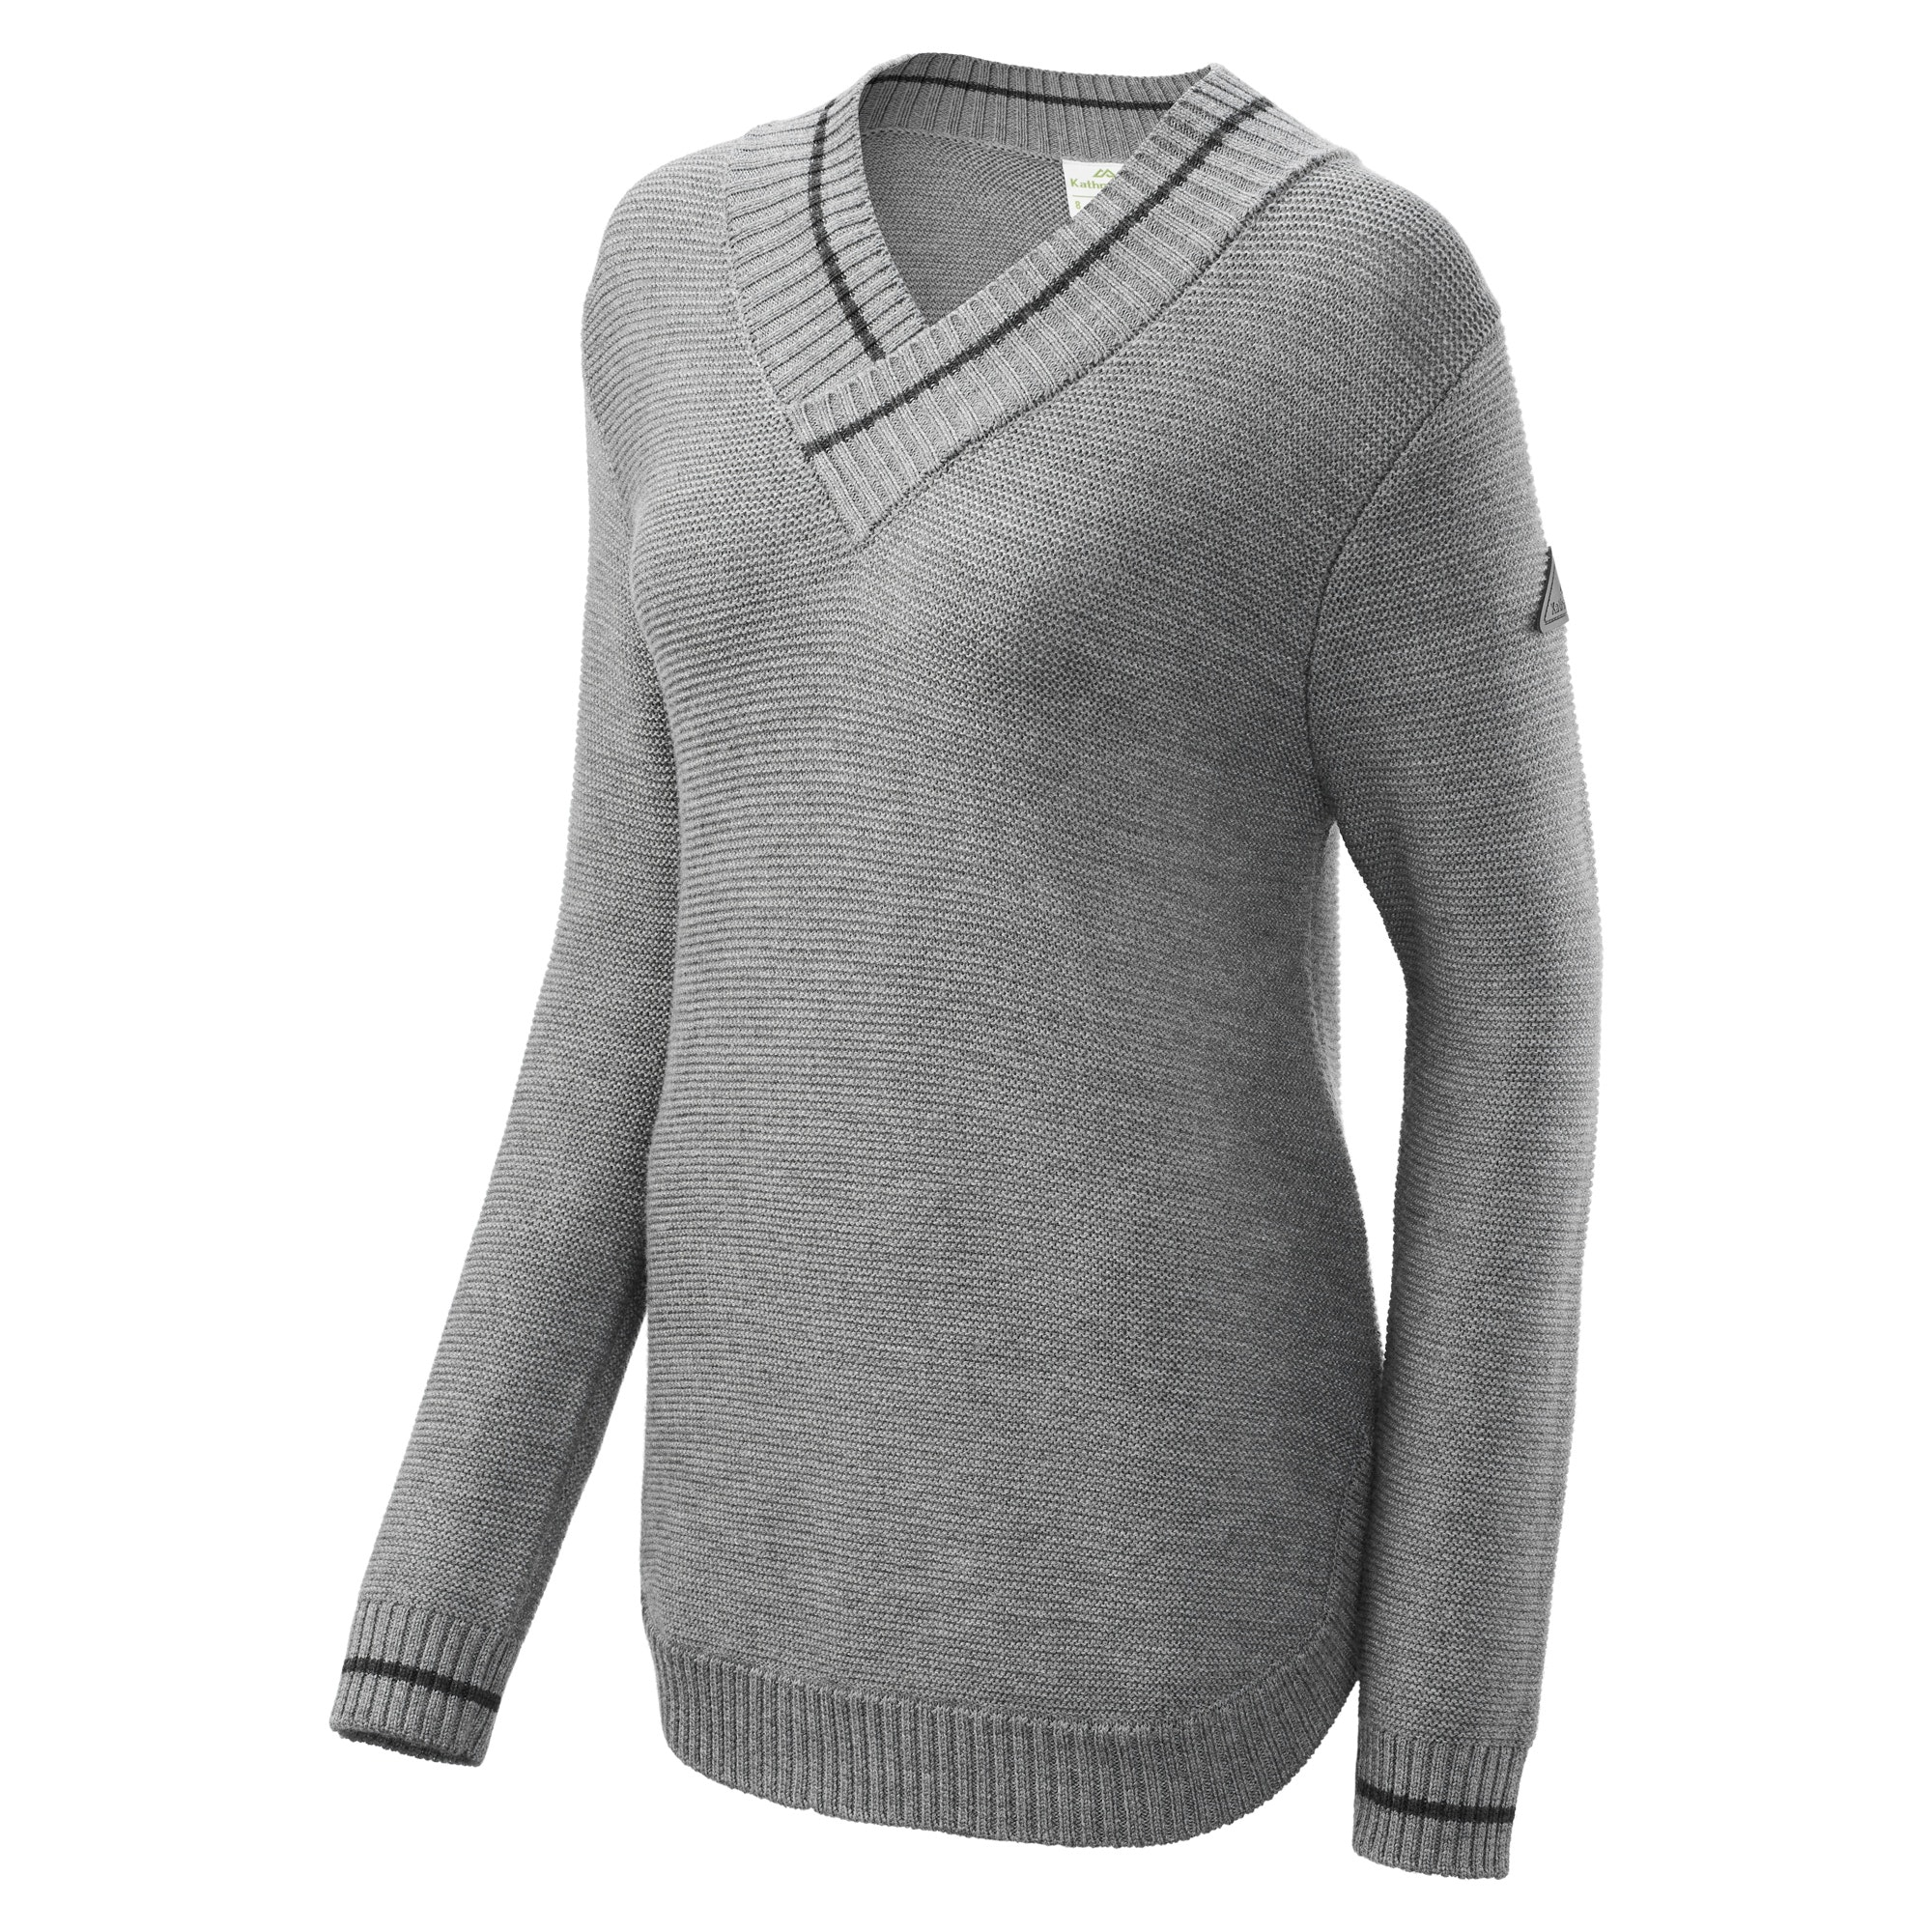 differently c8263 697bc Details about Kathmandu Westlands Women's Merino Wool Pullover